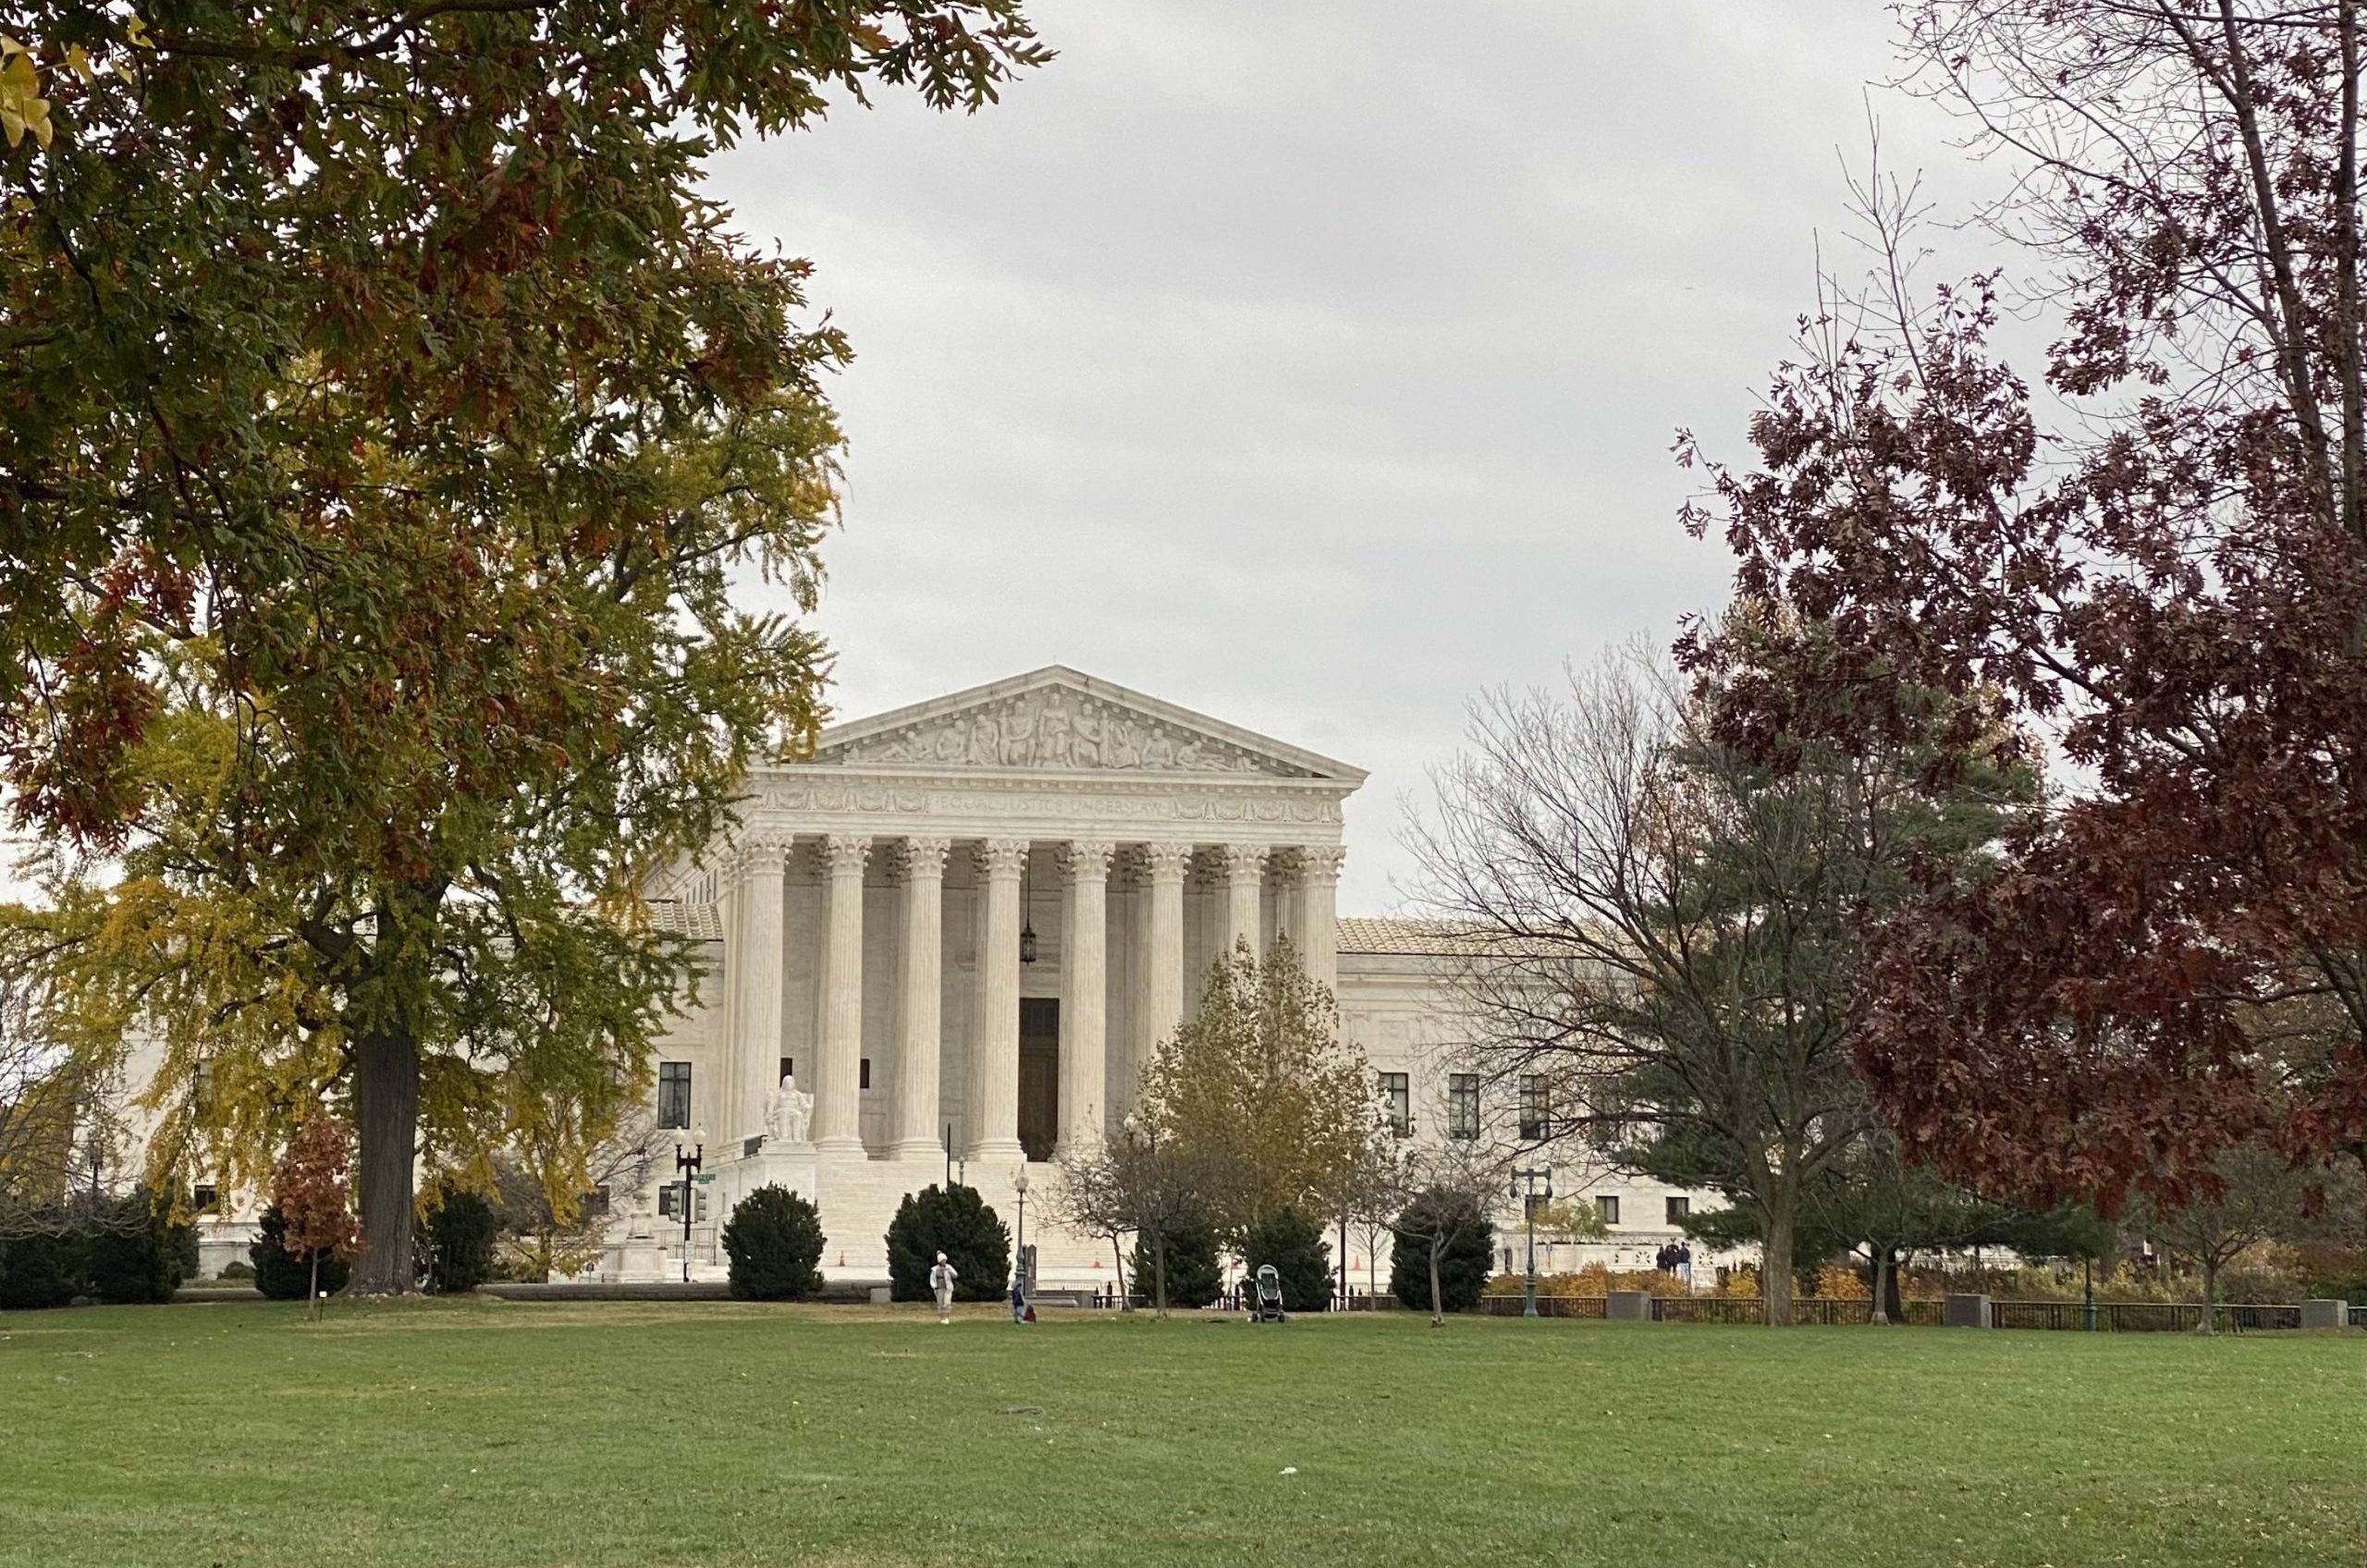 Supreme Court building seen from a distance surrounded by trees